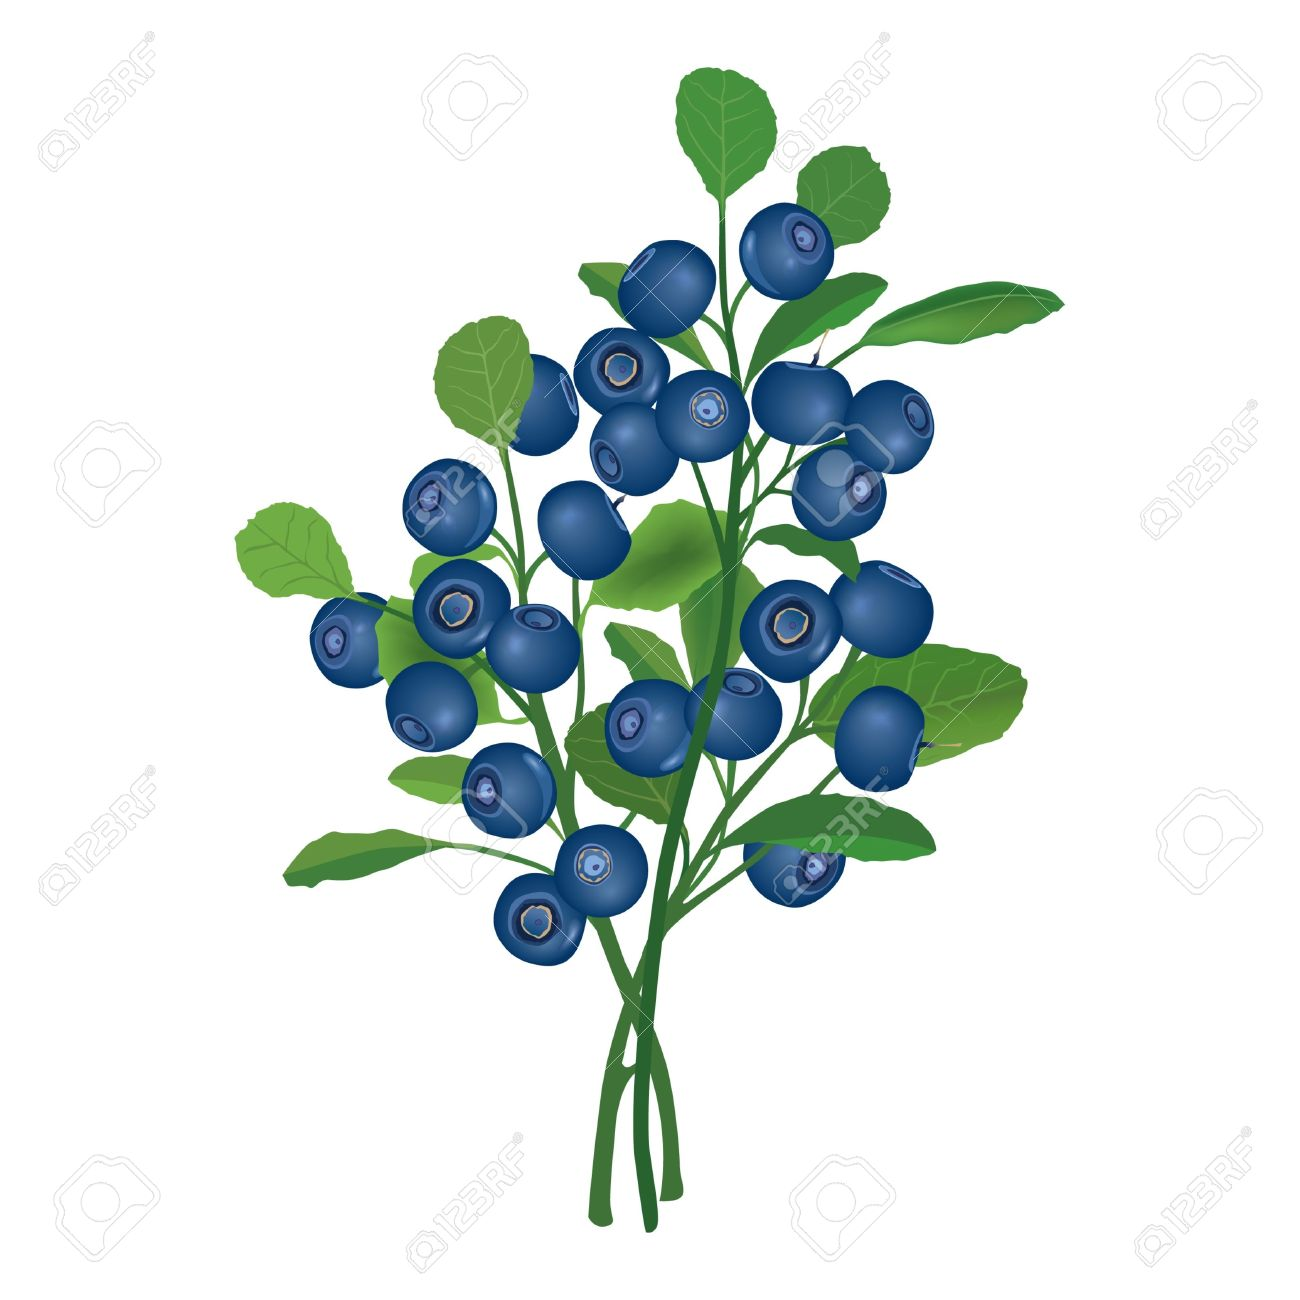 Berry bush clipart.